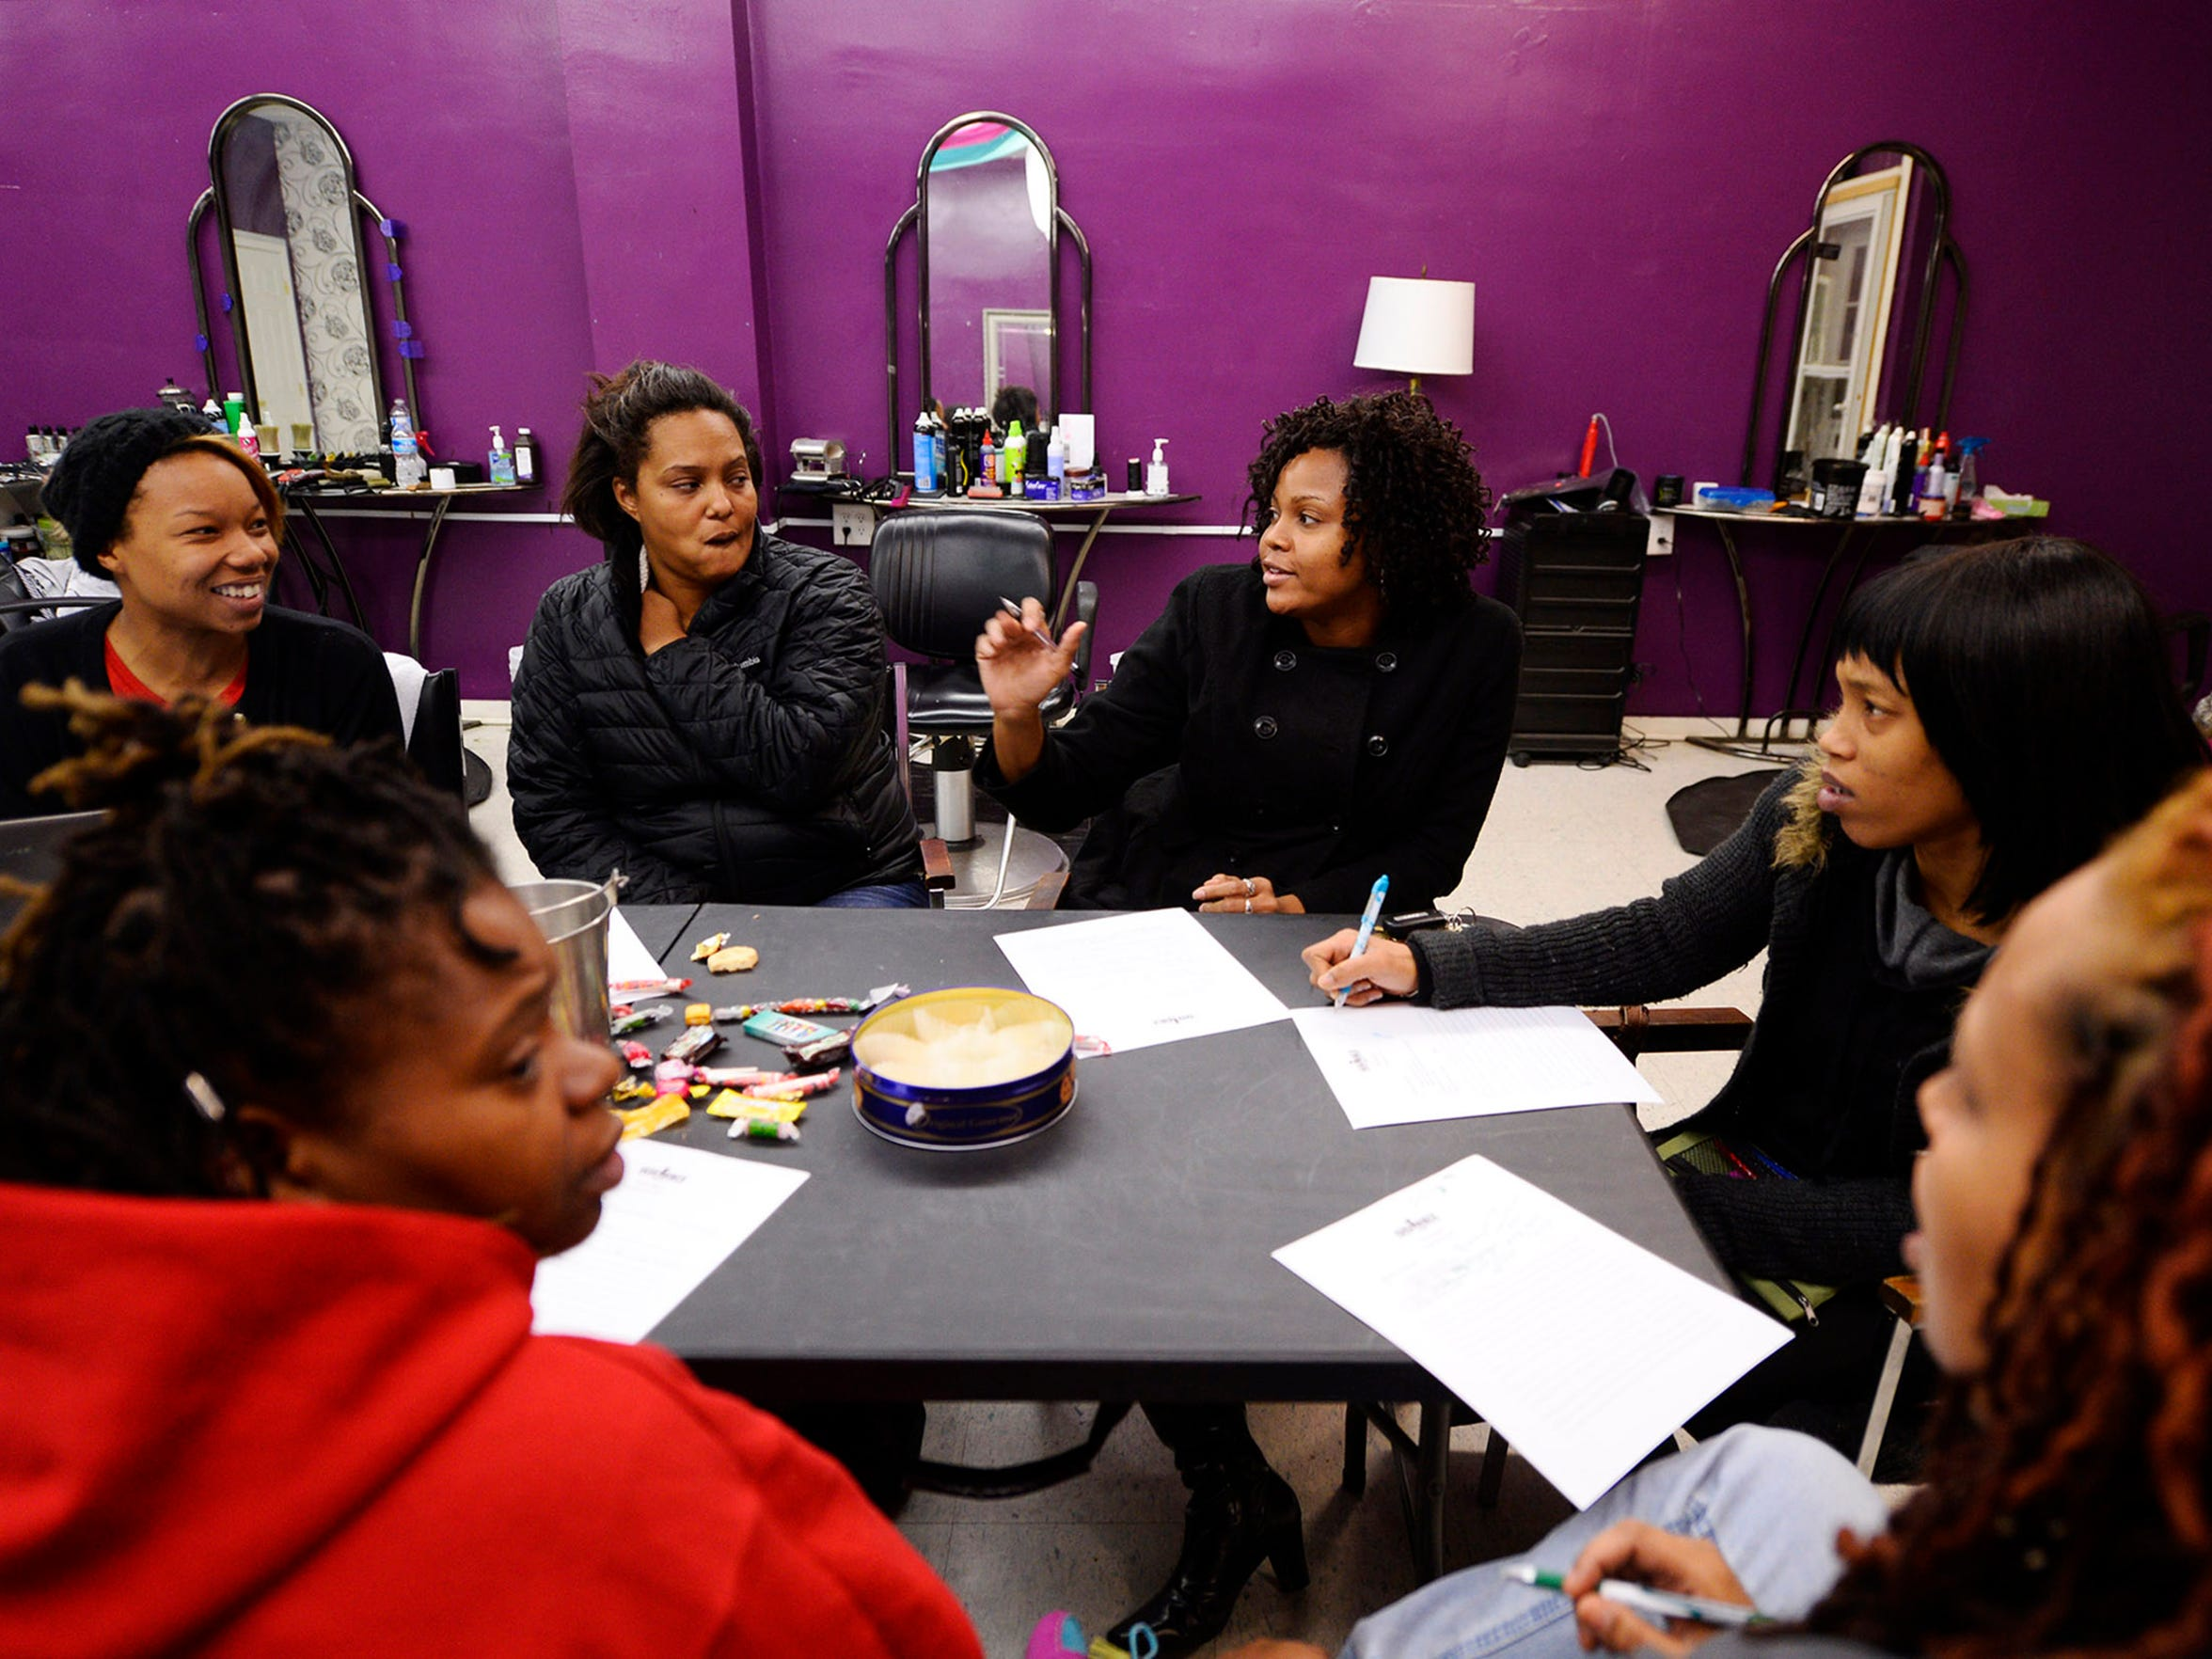 "YAYA leaders, clockwise form bottom left: Norma Johnson, Alisha Shockley, Chivonne ShockleyMoore, Dericka Scales, Keisha Jenkins, and Marisa Wilson plan for upcoming weeks at Beneath the Surface, a salon owned by Wilson, in York in November. ""We decided to start this group to show and teach girls how to become better friends, mothers, sisters and women in this community,"" said Wilson, a founding member and president of YAYA Girls. ""We try to focus on things that empower the girls and make them better women as they grow up."""